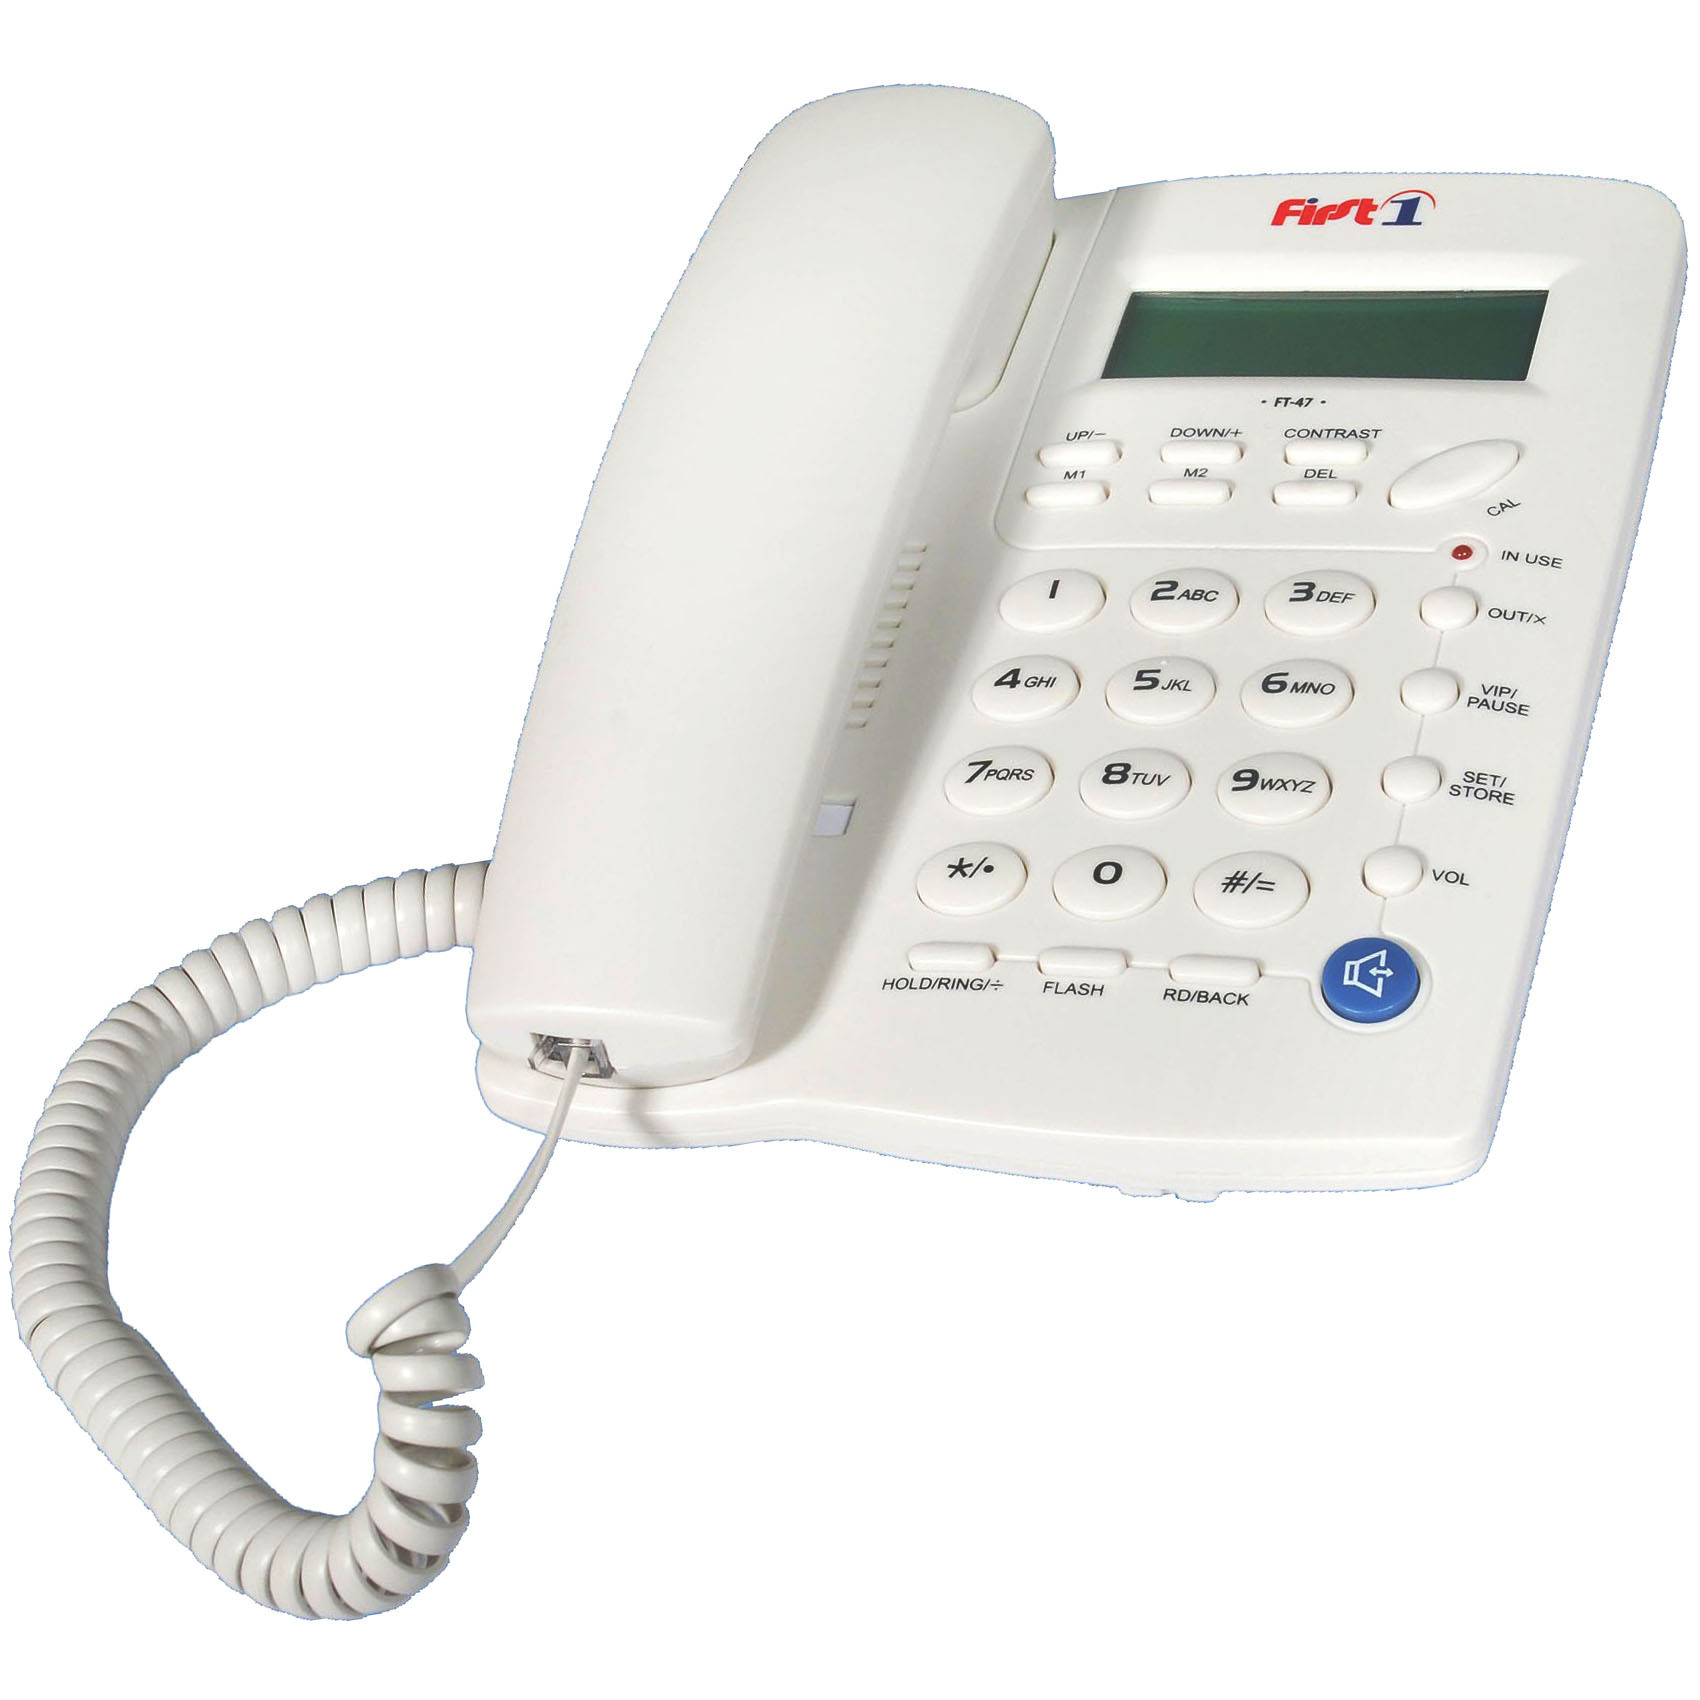 FIRST1 FT-47 CORDED PHONE